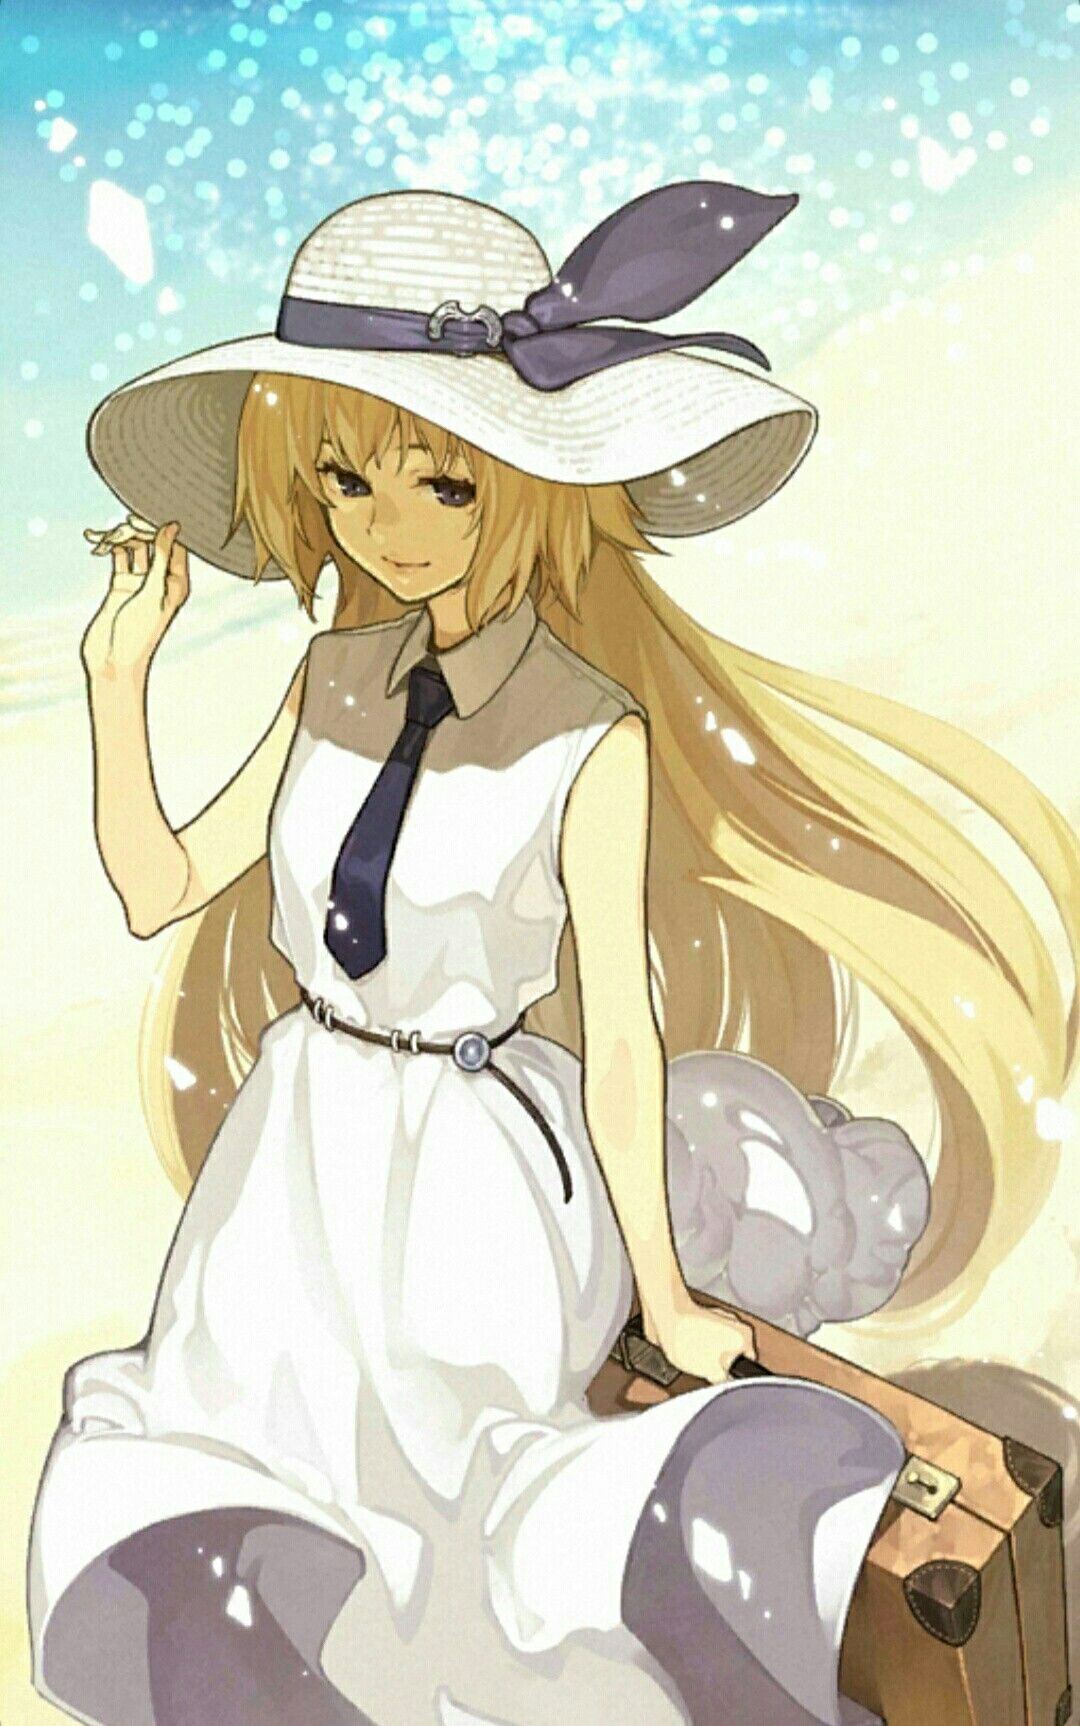 Jeanne d'art summer [Fate/Grand Order] in 2020 Joan of